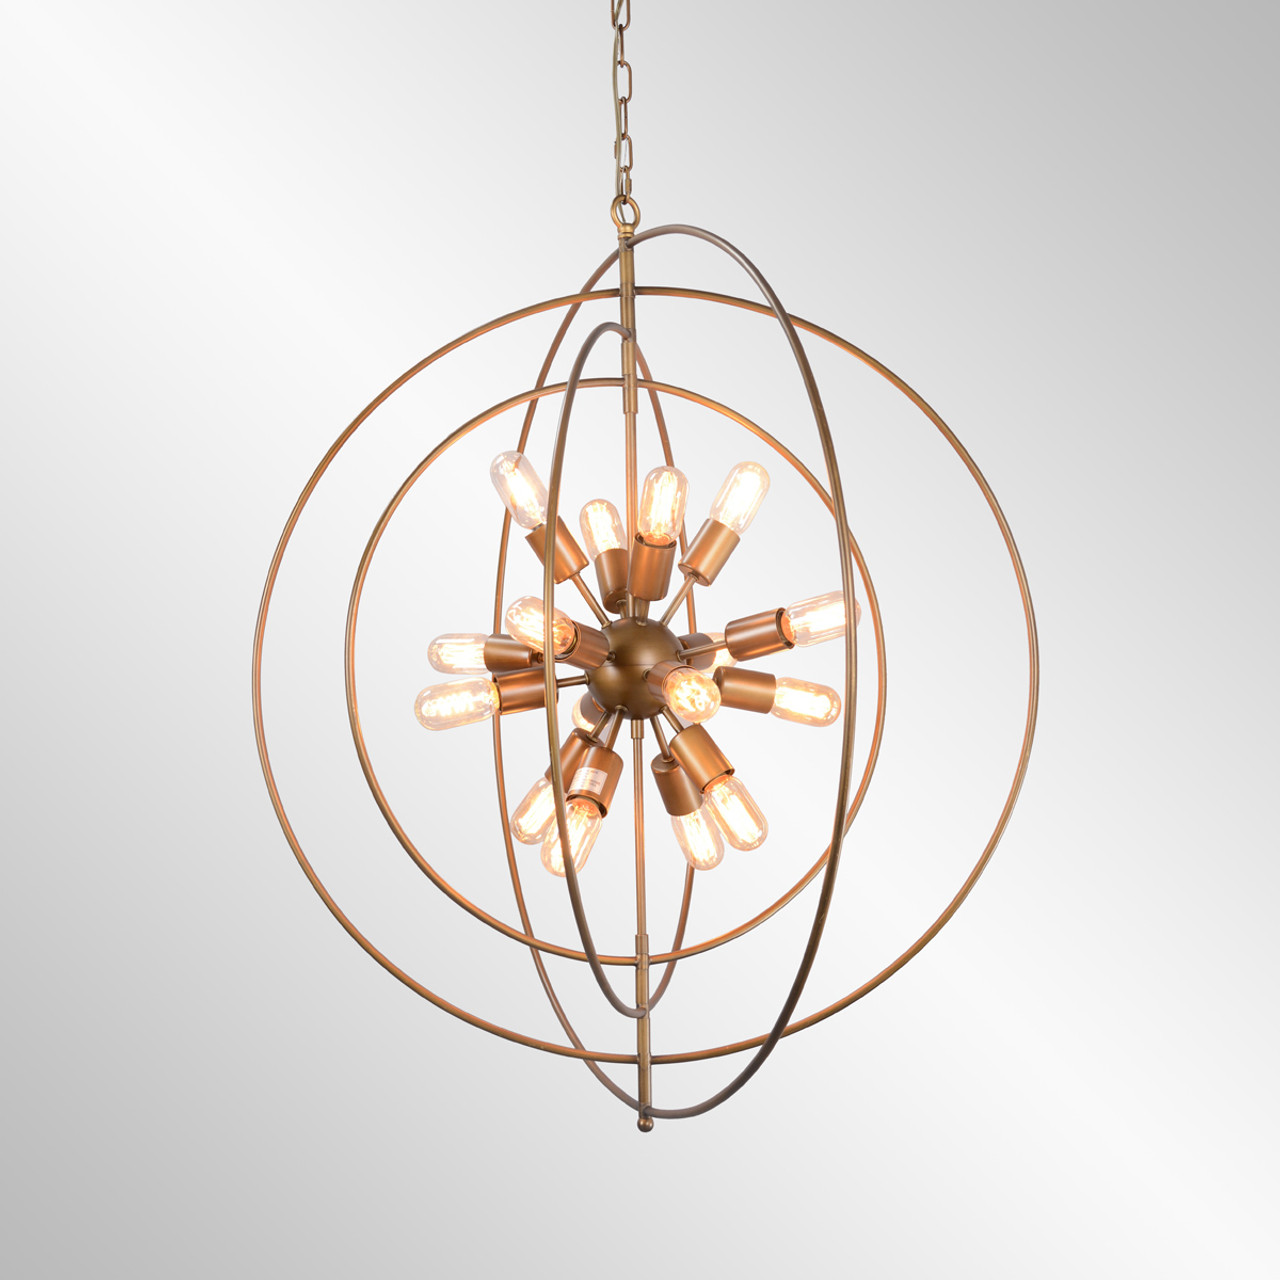 Cosmos iron chandelier large california living cosmos iron chandelier large arubaitofo Image collections